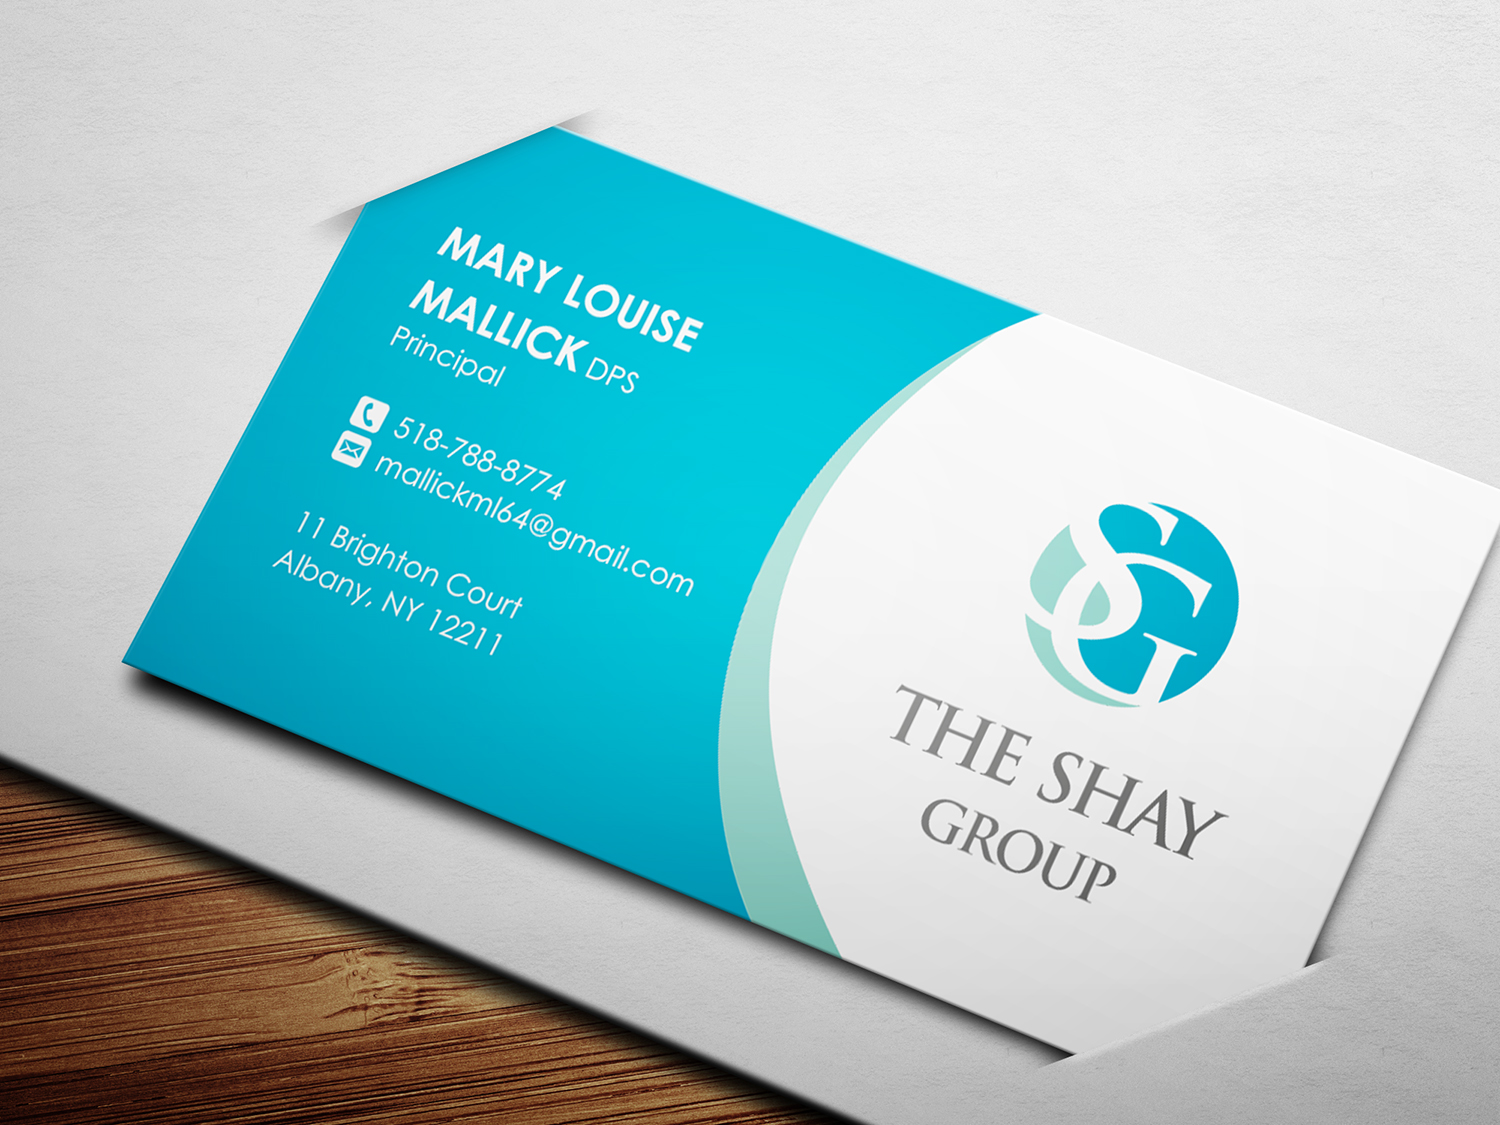 15 Elegant Playful Business Card Designs for The Shay Group a ...